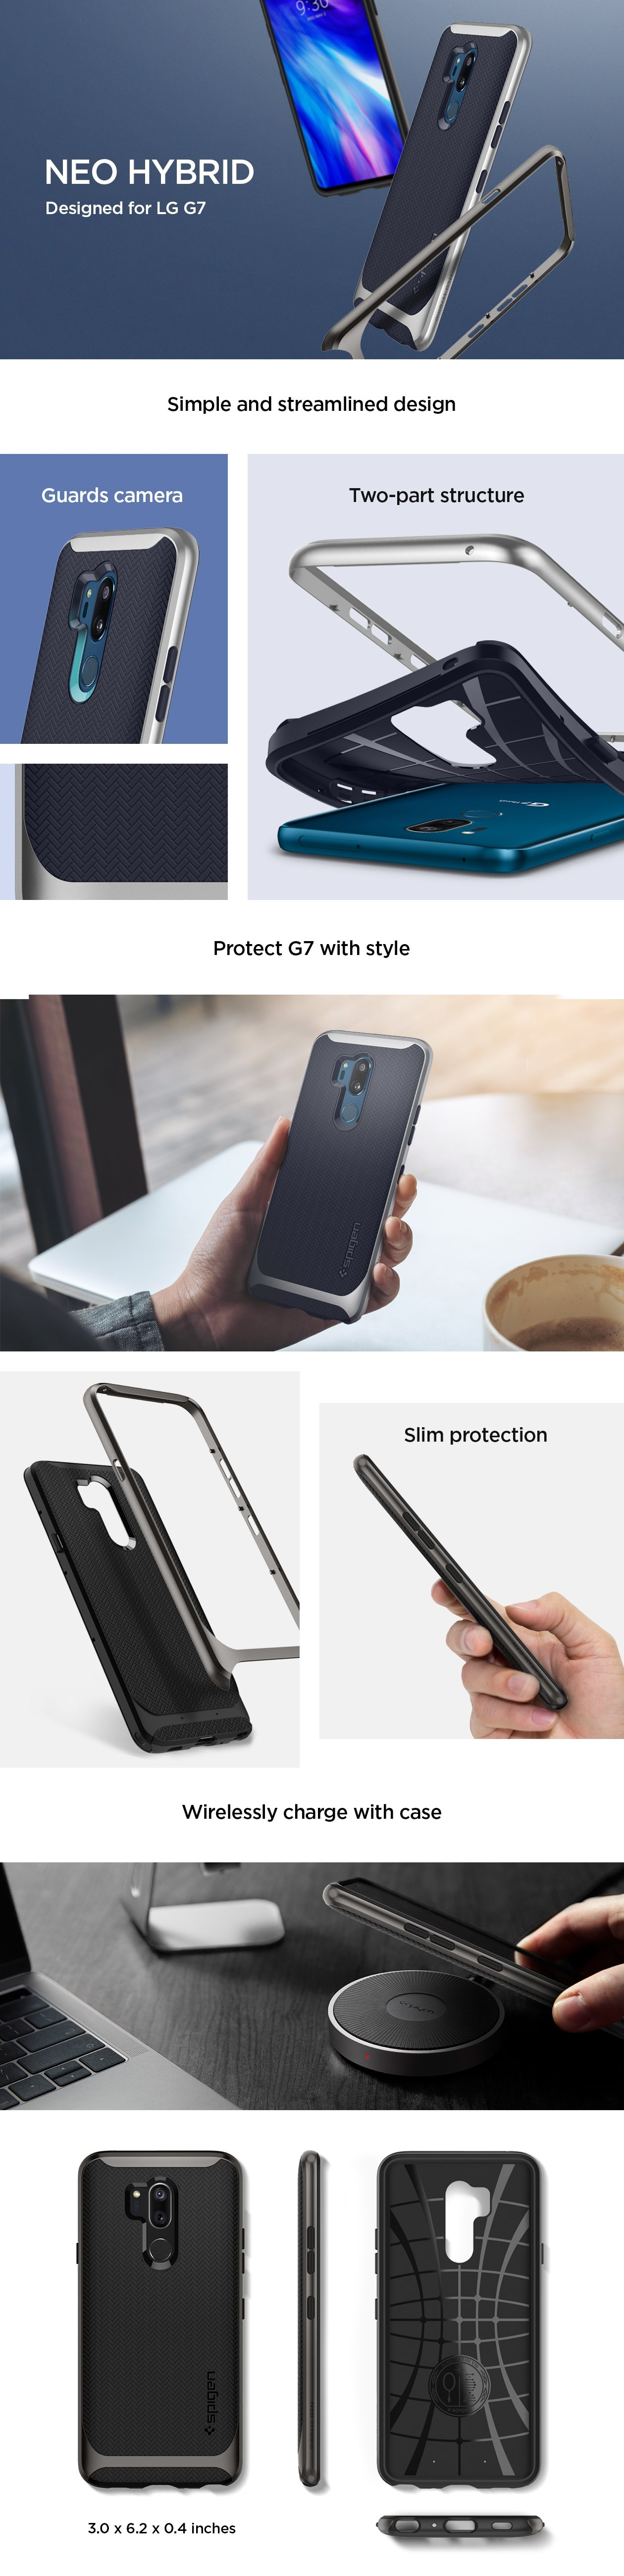 newest d3309 19693 Buy the Spigen LG G7 ThinQ Neo Hybrid Urban Case Gunmetal,Certified  Military... ( A27CS23037 ) online